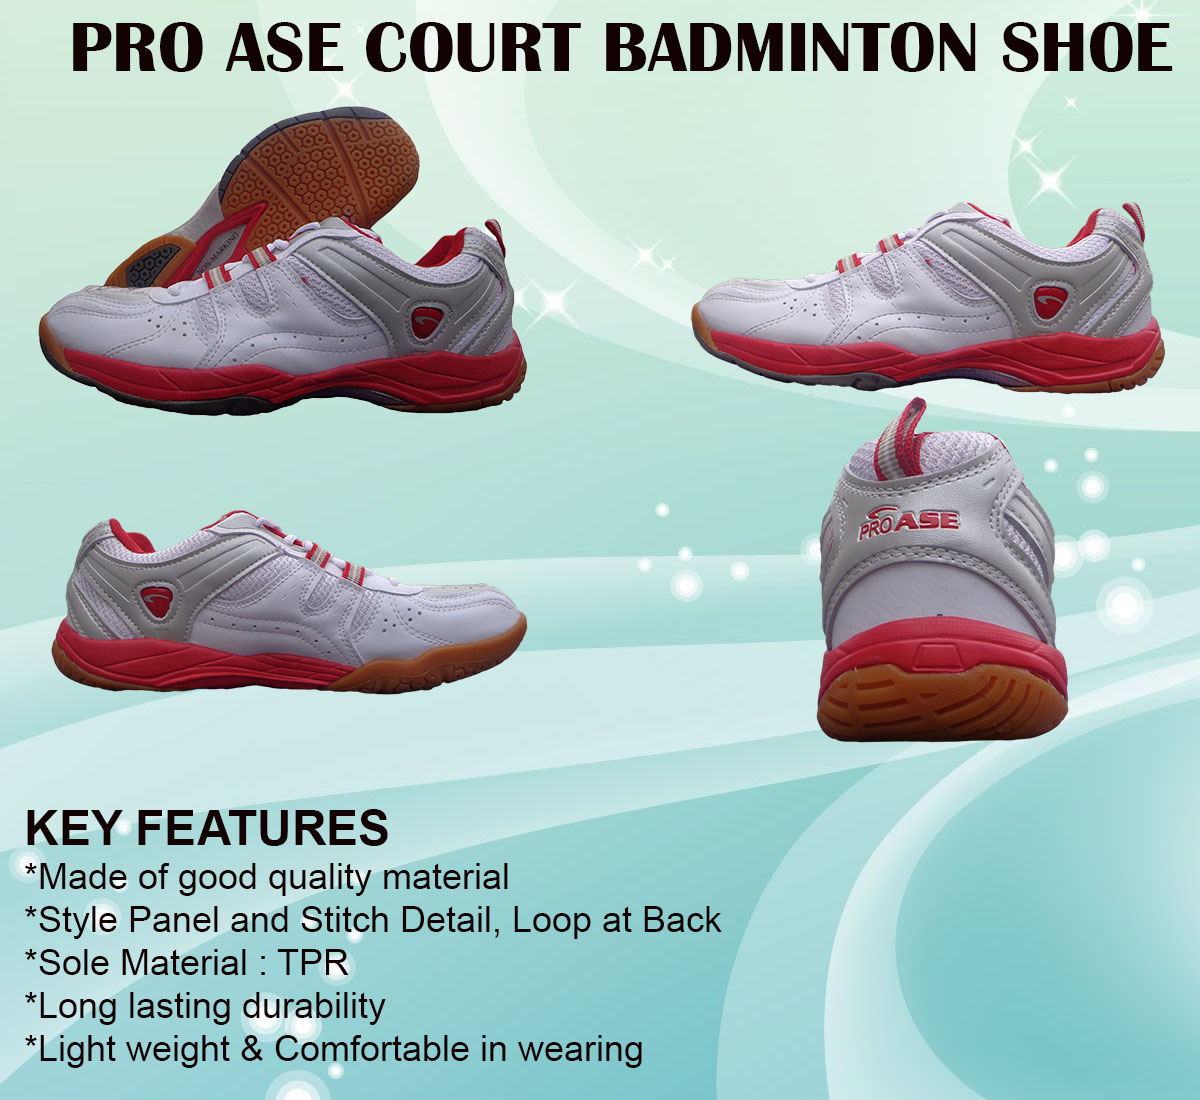 PRO ASE COURT BADMINTON SHOE_red & white